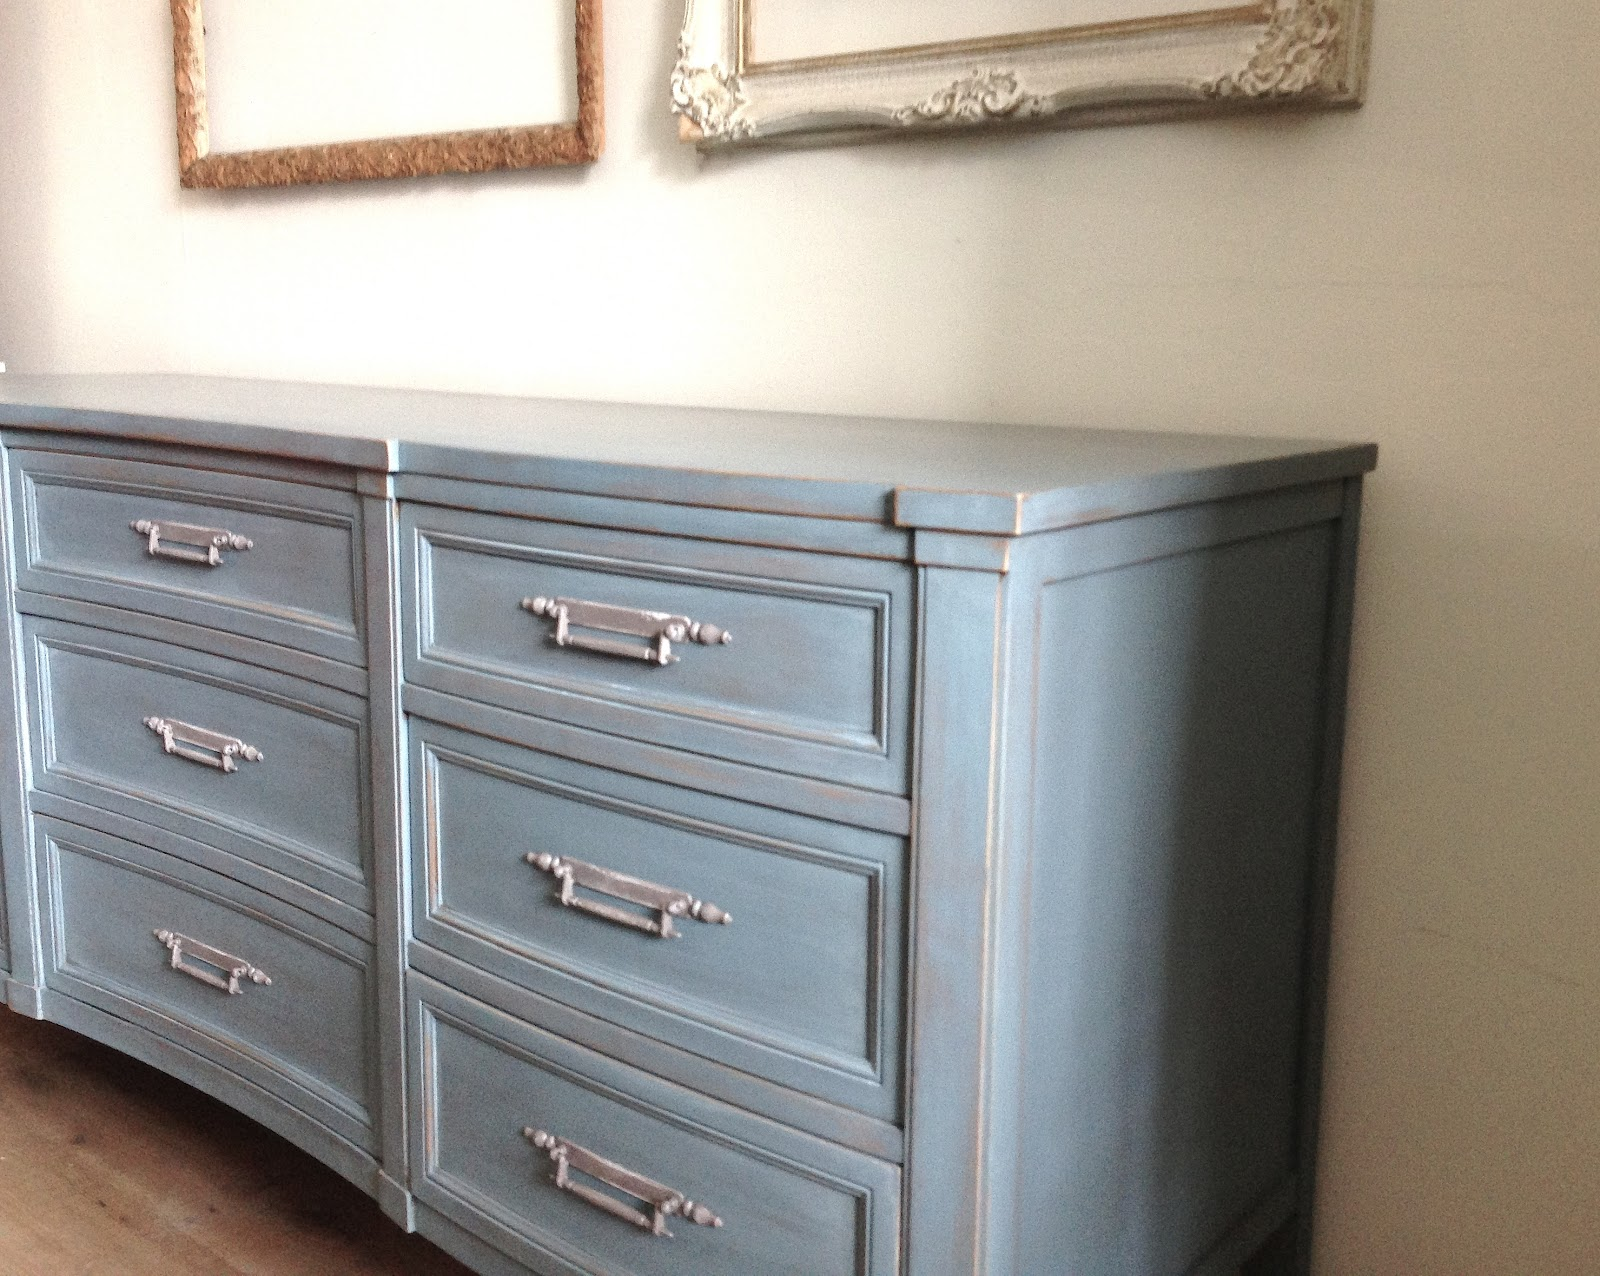 Superbe This Piece Of Furniture Did Not Need A Bright Coat Of Paint Or Flashy Knobs  To Make It Stand Out. It Offers An Abundance Of Storage In Beautifully  Lined And ...